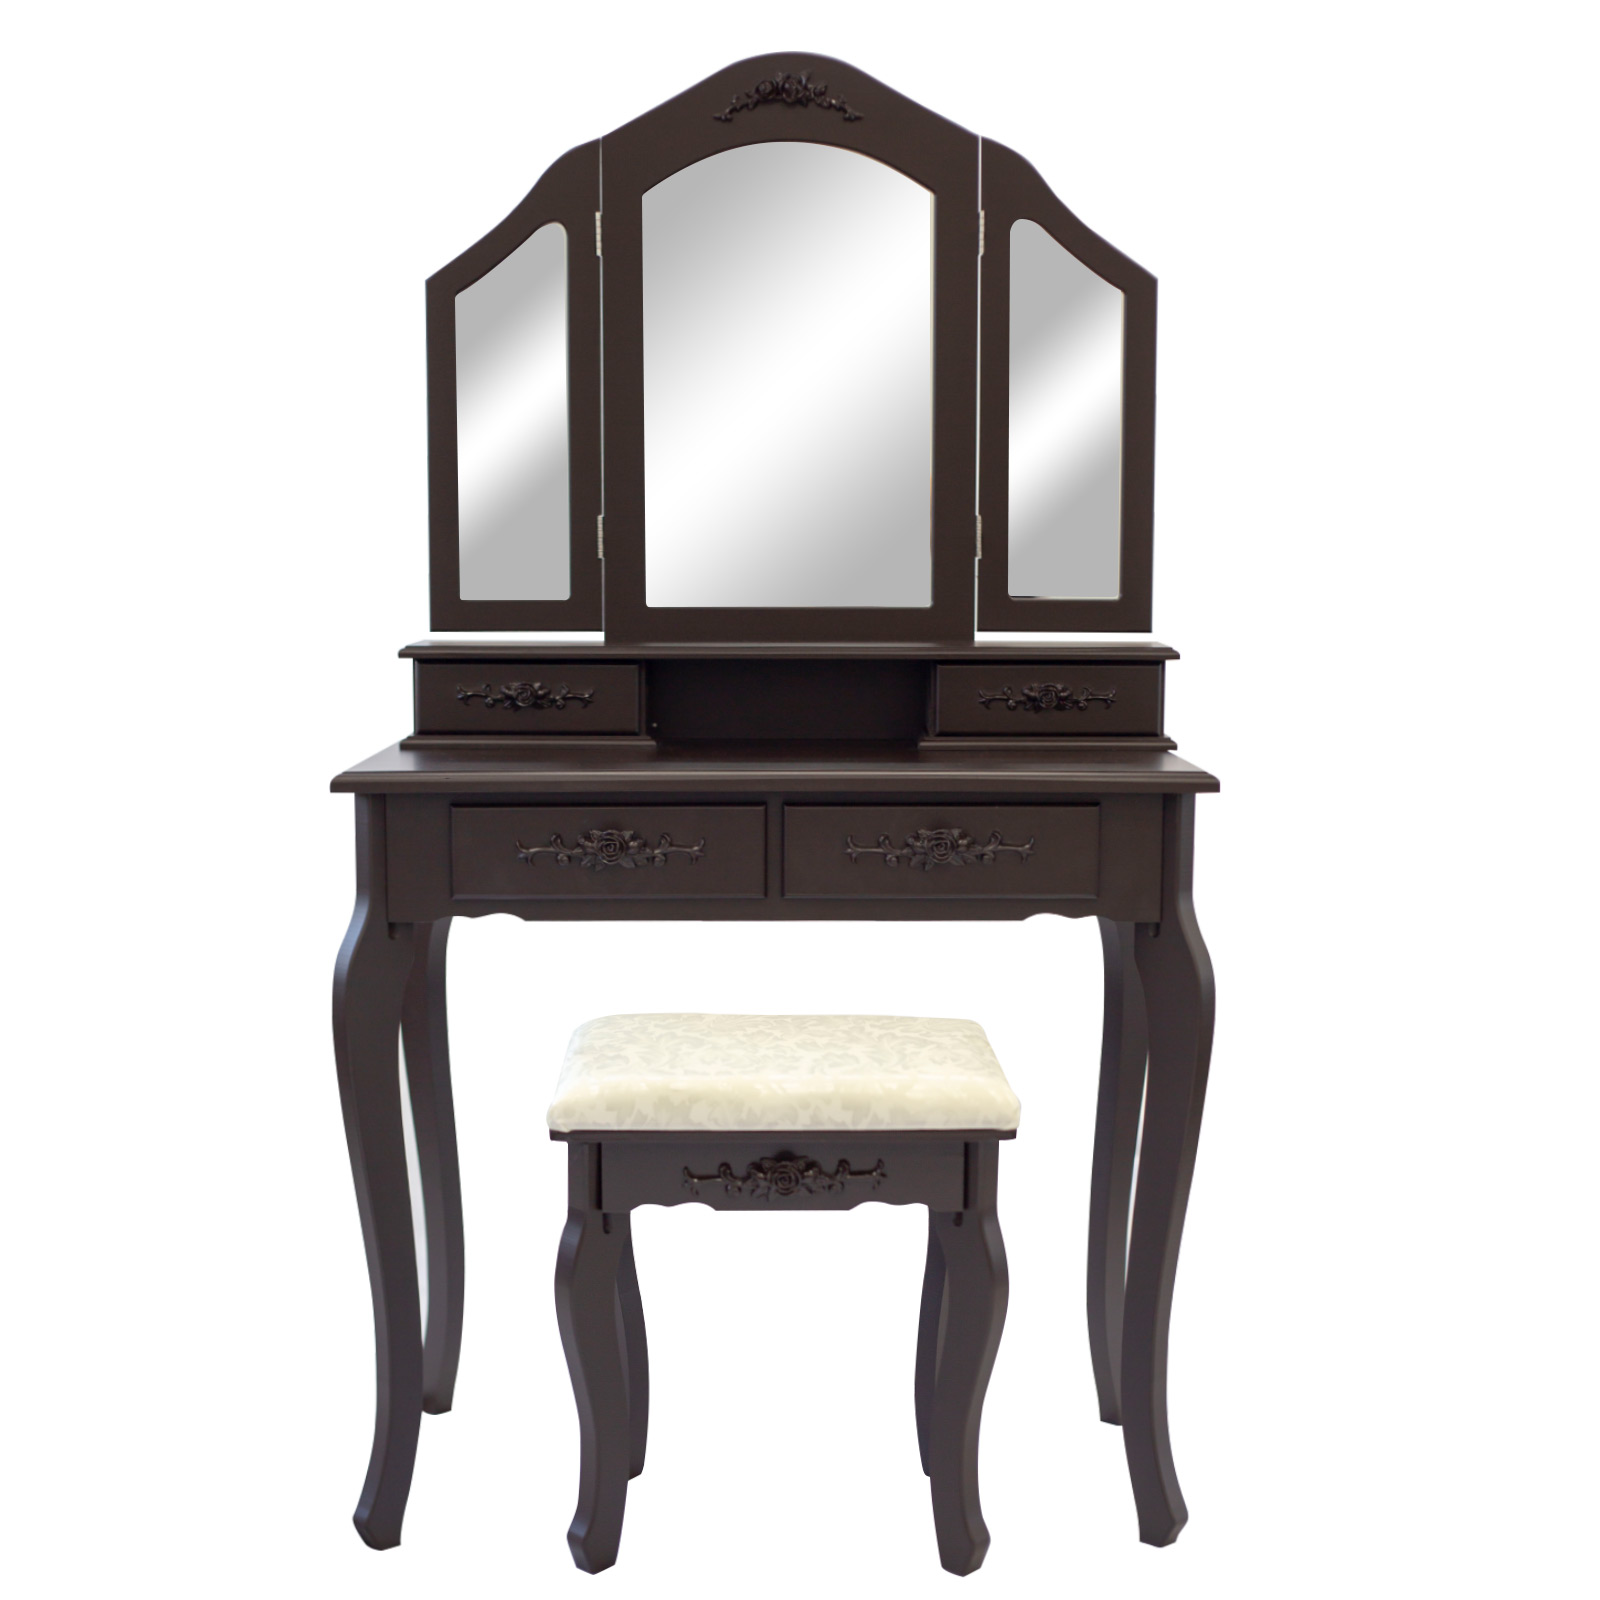 3 Mirrors 4 Drawers Dressing Table - DIANA BROWN